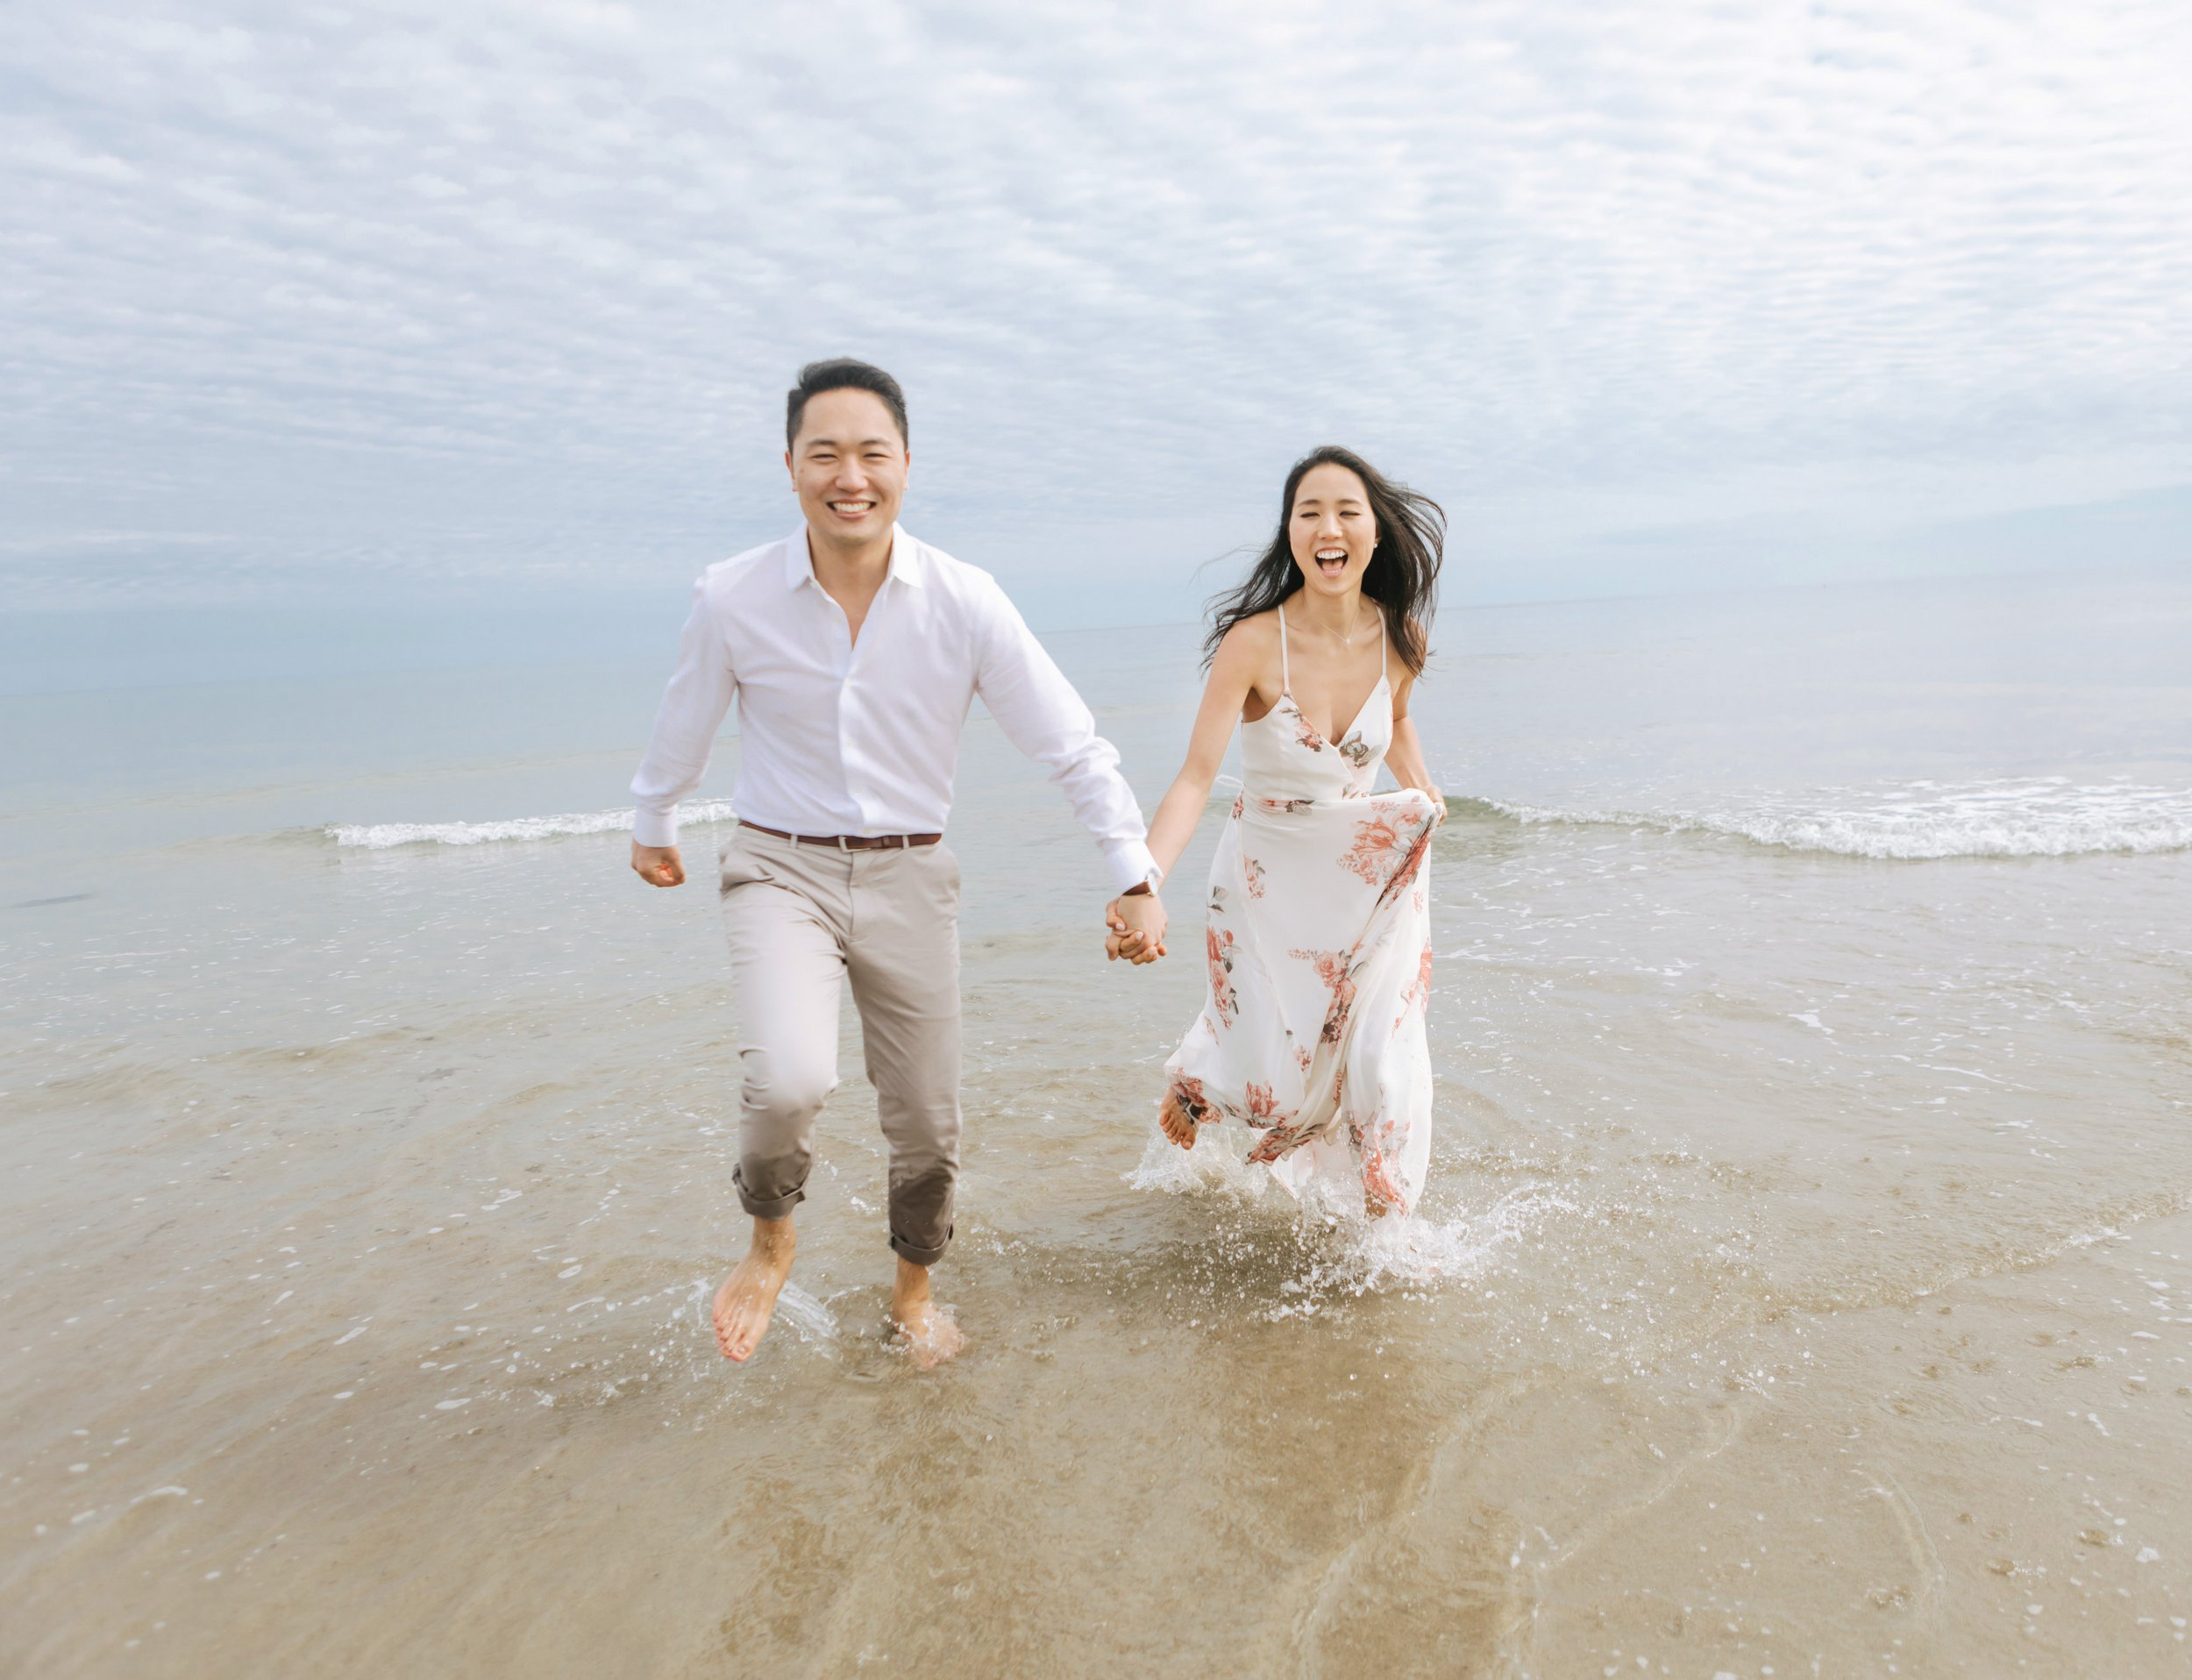 Crane-Beach-Engagement-Wedding-Lena-Mirisola-14.JPG